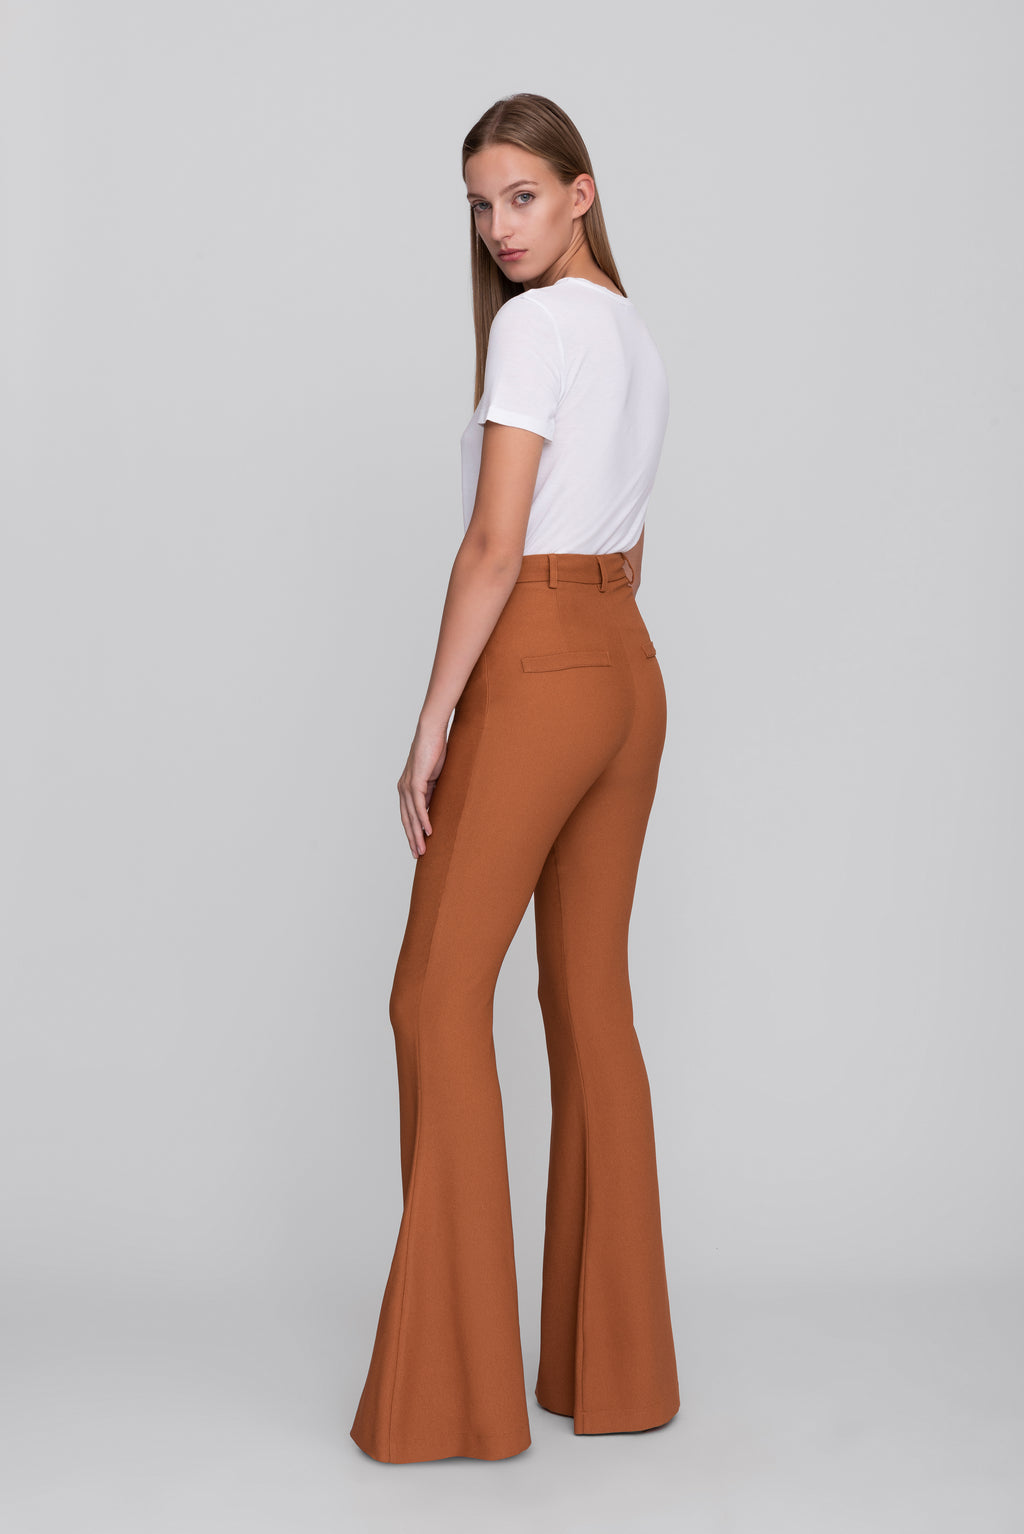 The Rust Bianca Pants